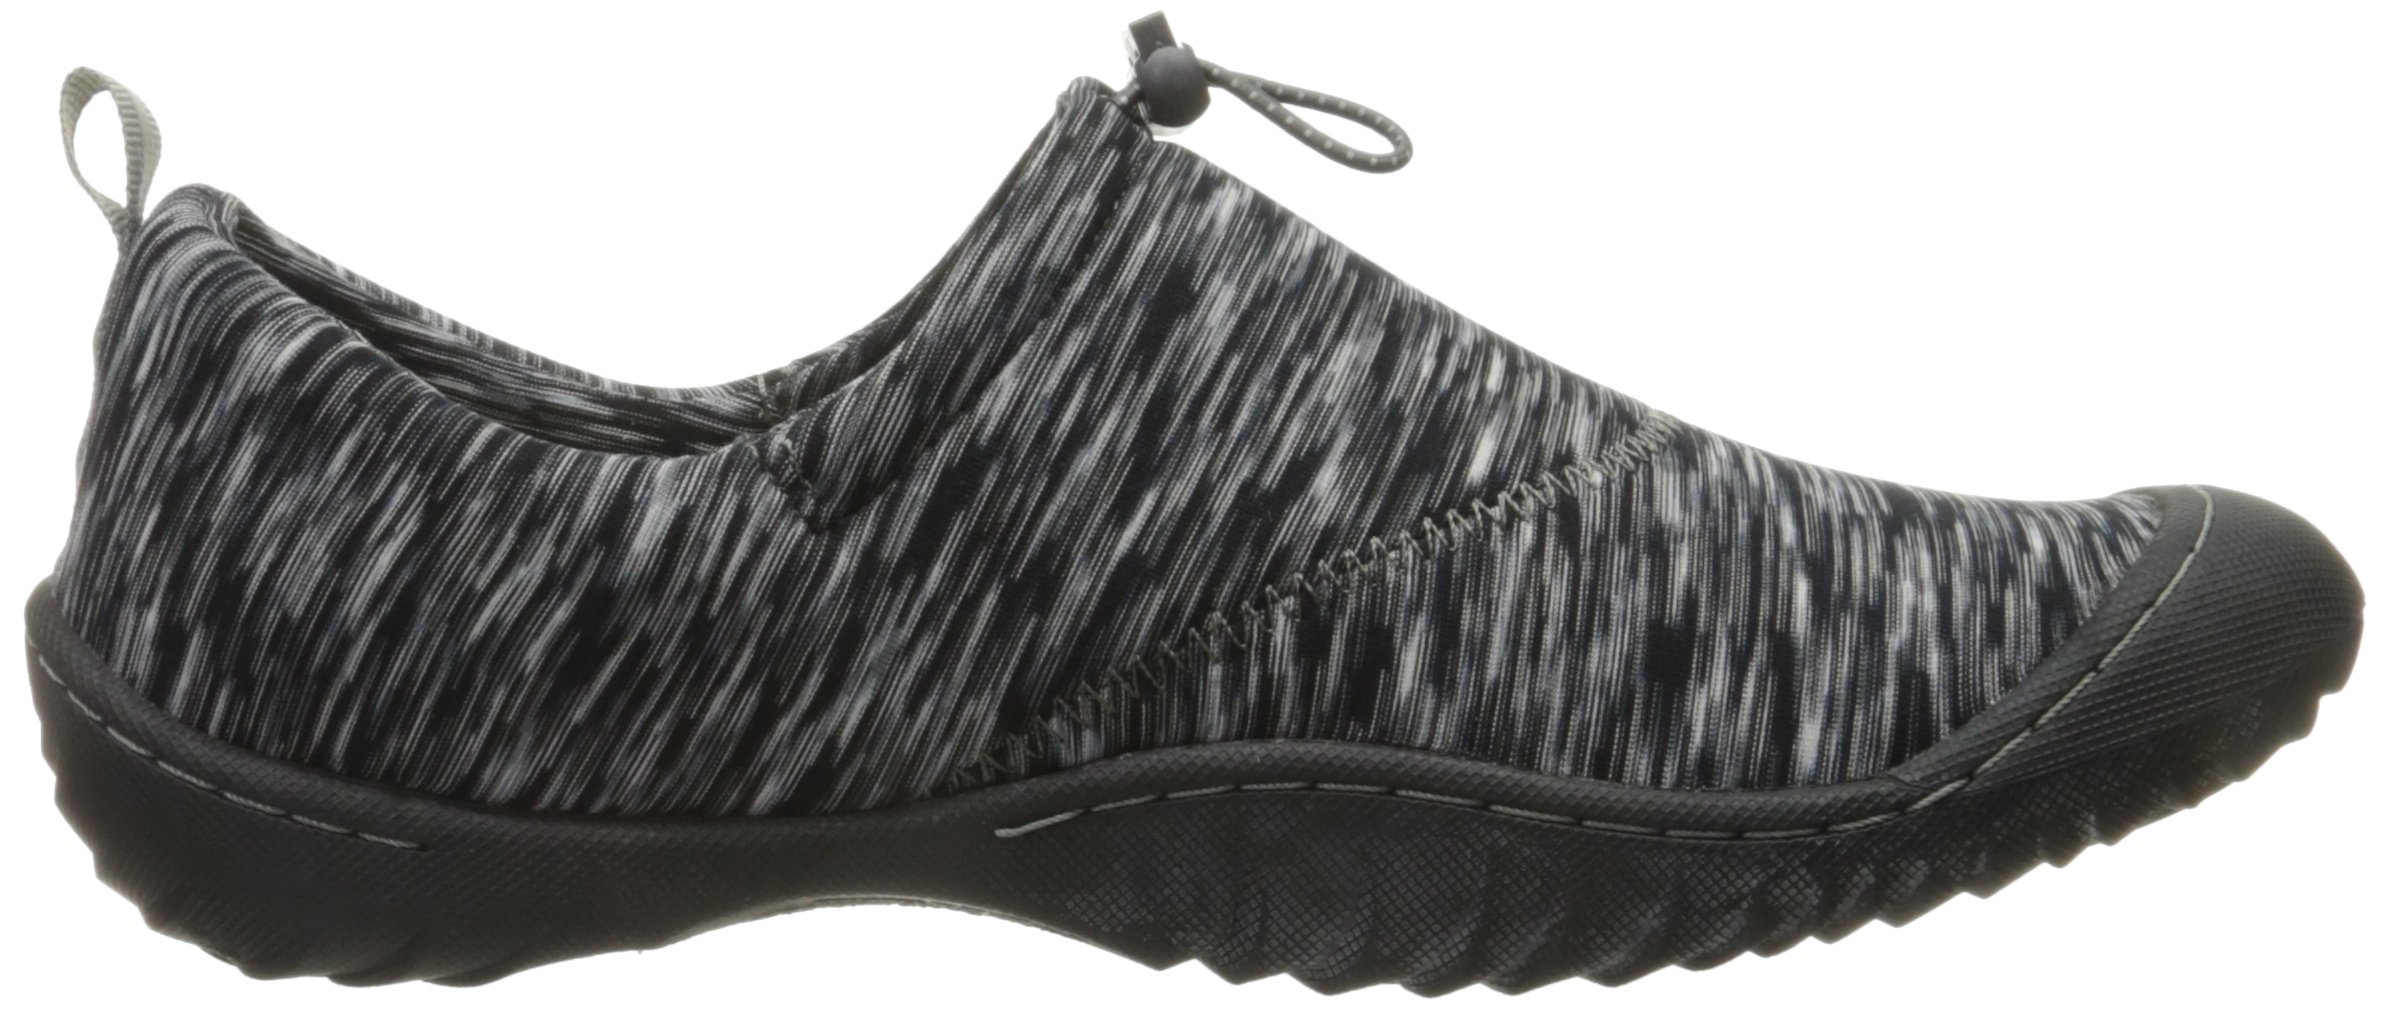 JSport by Jambu Women's Clare Walking Shoe, Black/Multi, 7 M US by JSport by Jambu (Image #7)